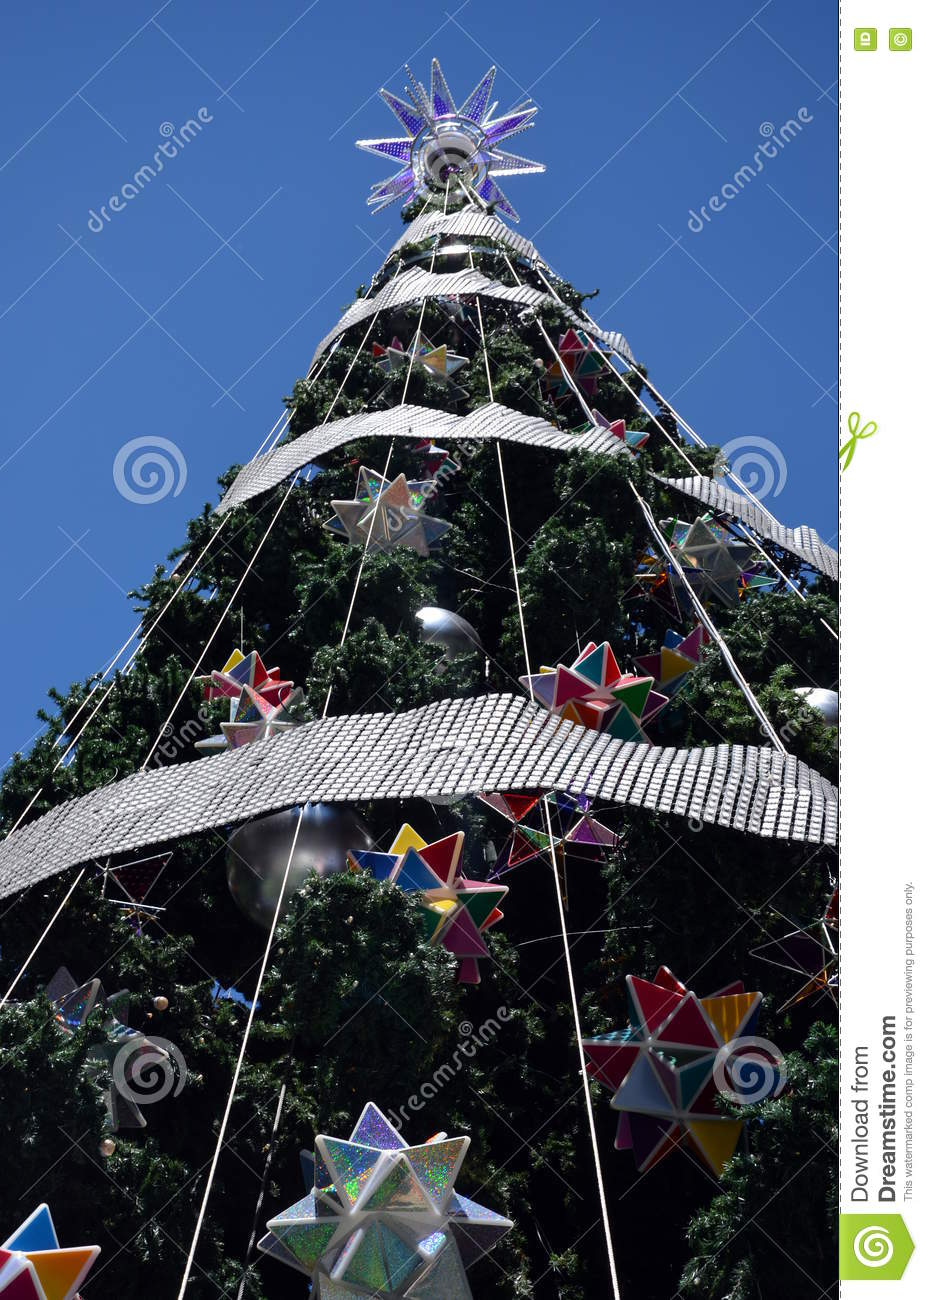 How to decorate tall outdoor christmas tree - Tall Outdoor Christmas Tree With Decoration Stock Photo